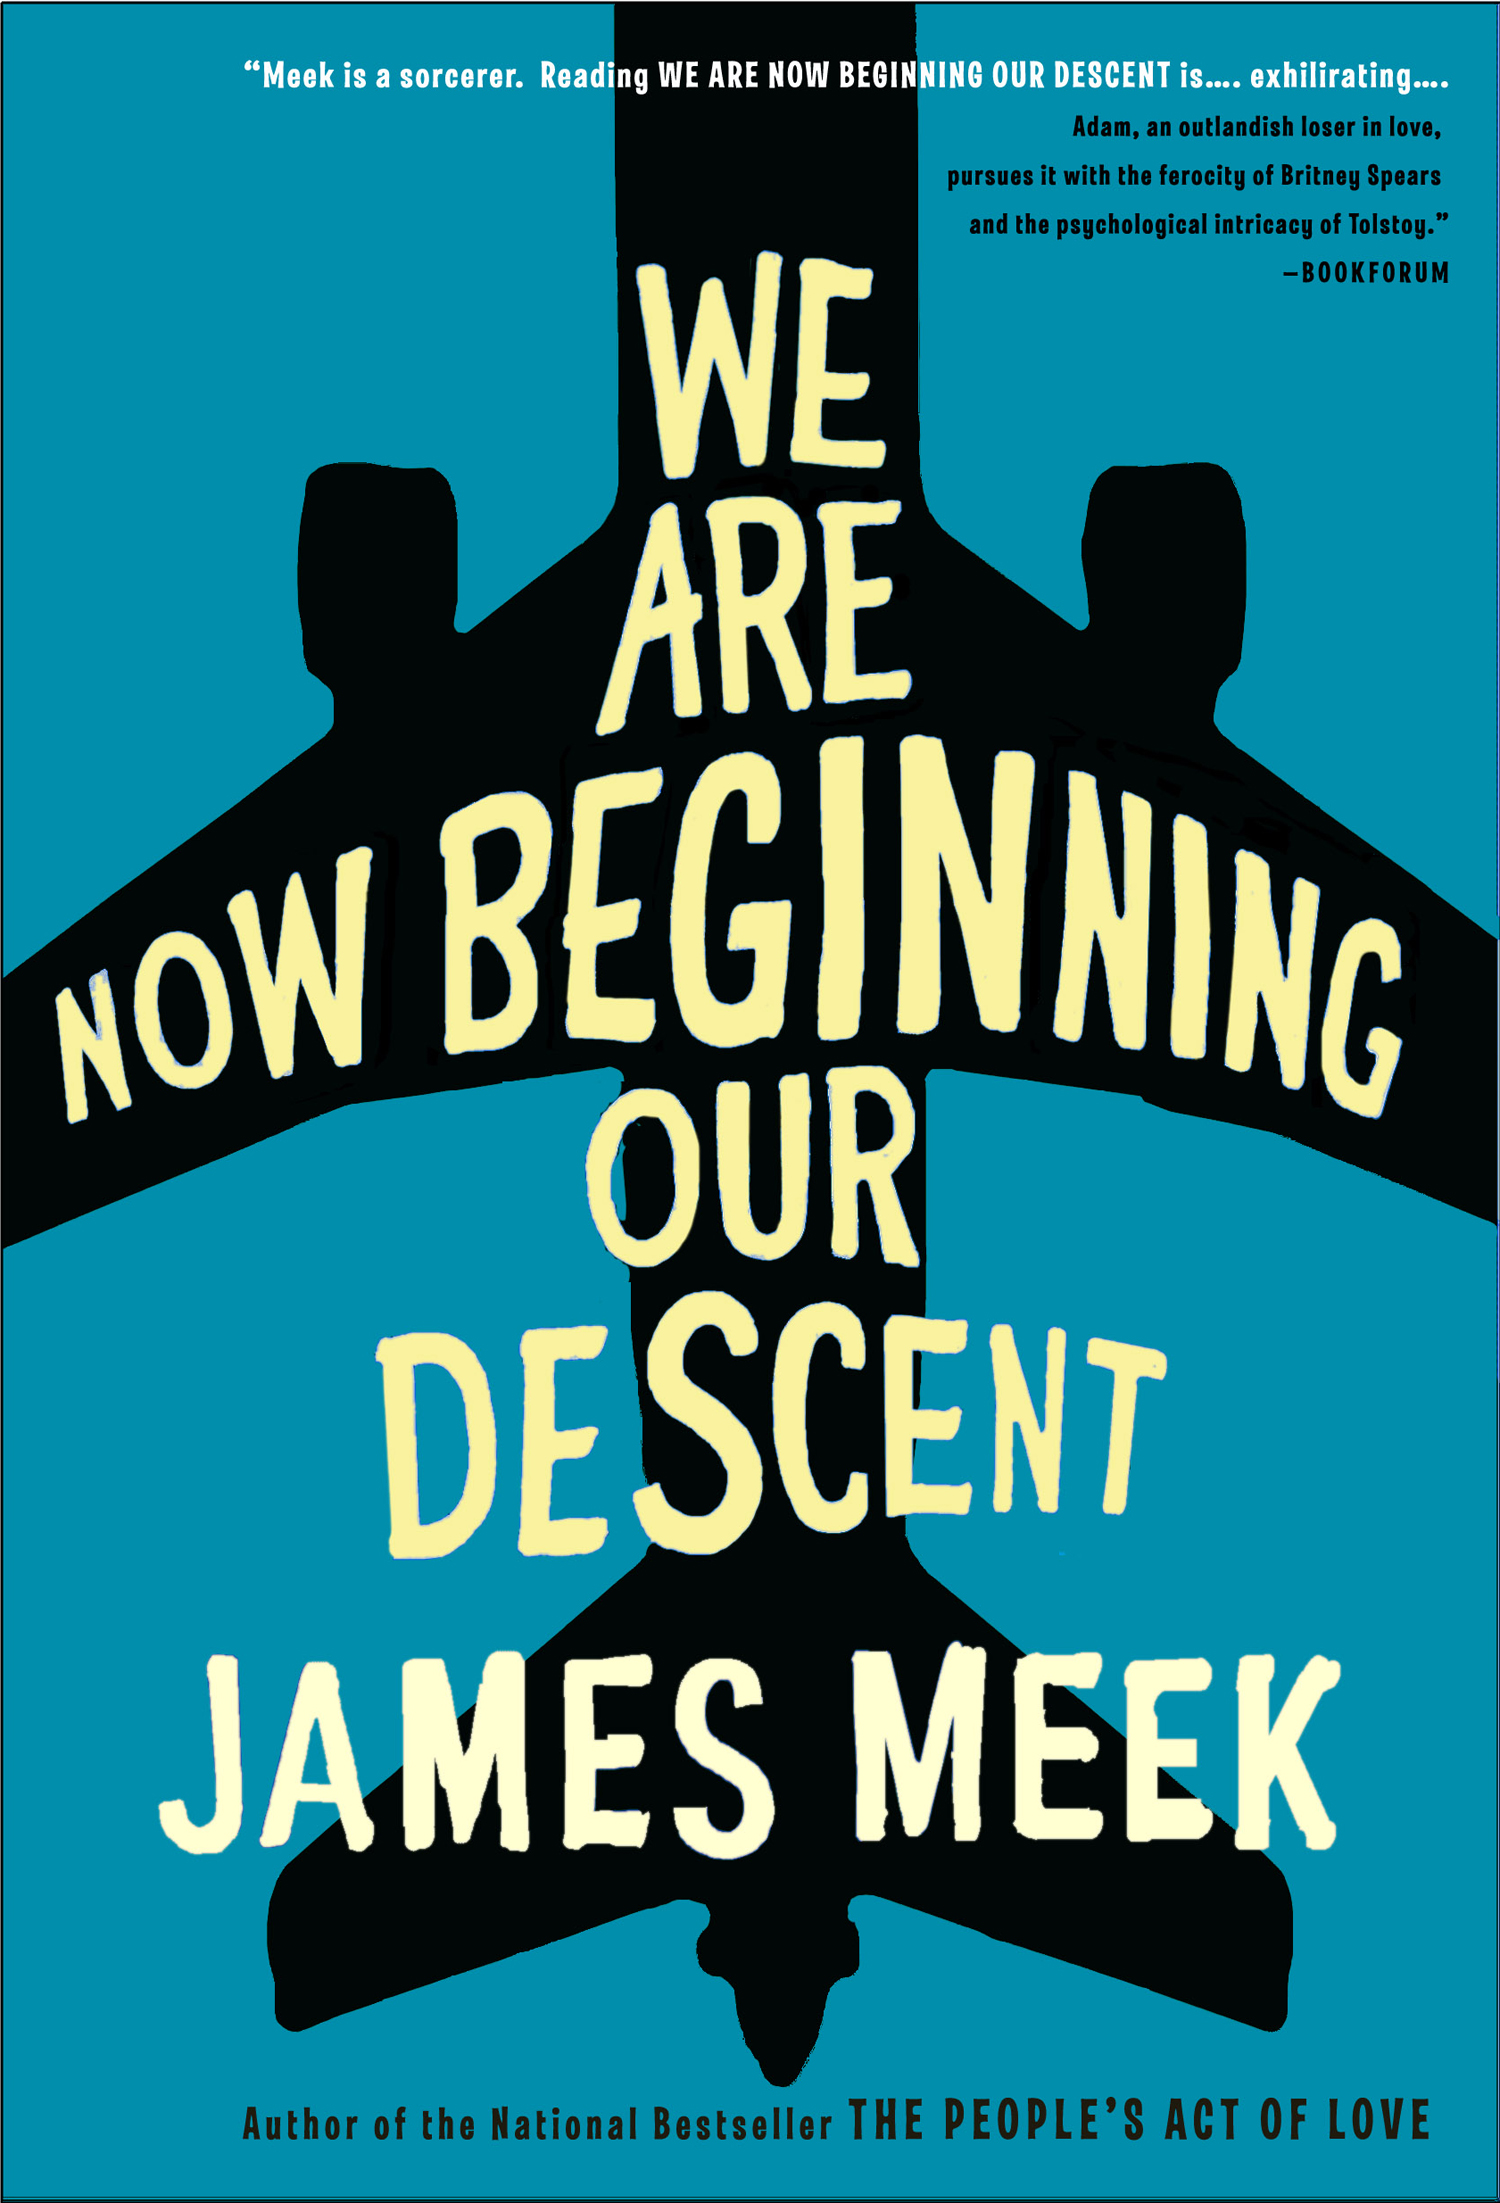 WE-ARE-NOW-BEGINNING-OUR-DESCENT-comp3-ss6.jpg